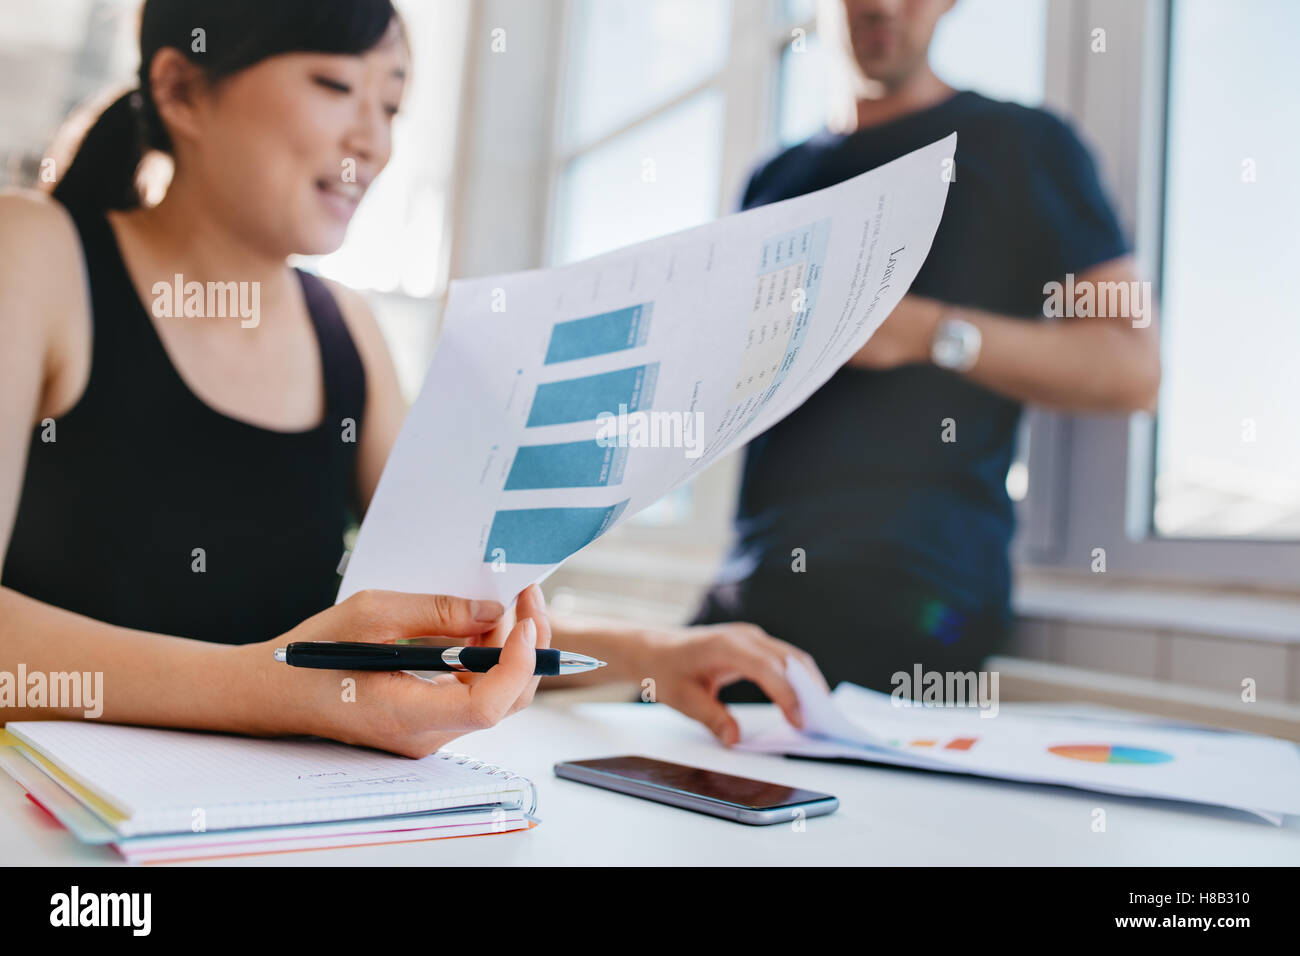 Woman doing financial analysis at office with male colleague standing in background. Asian female holding documents - Stock Image